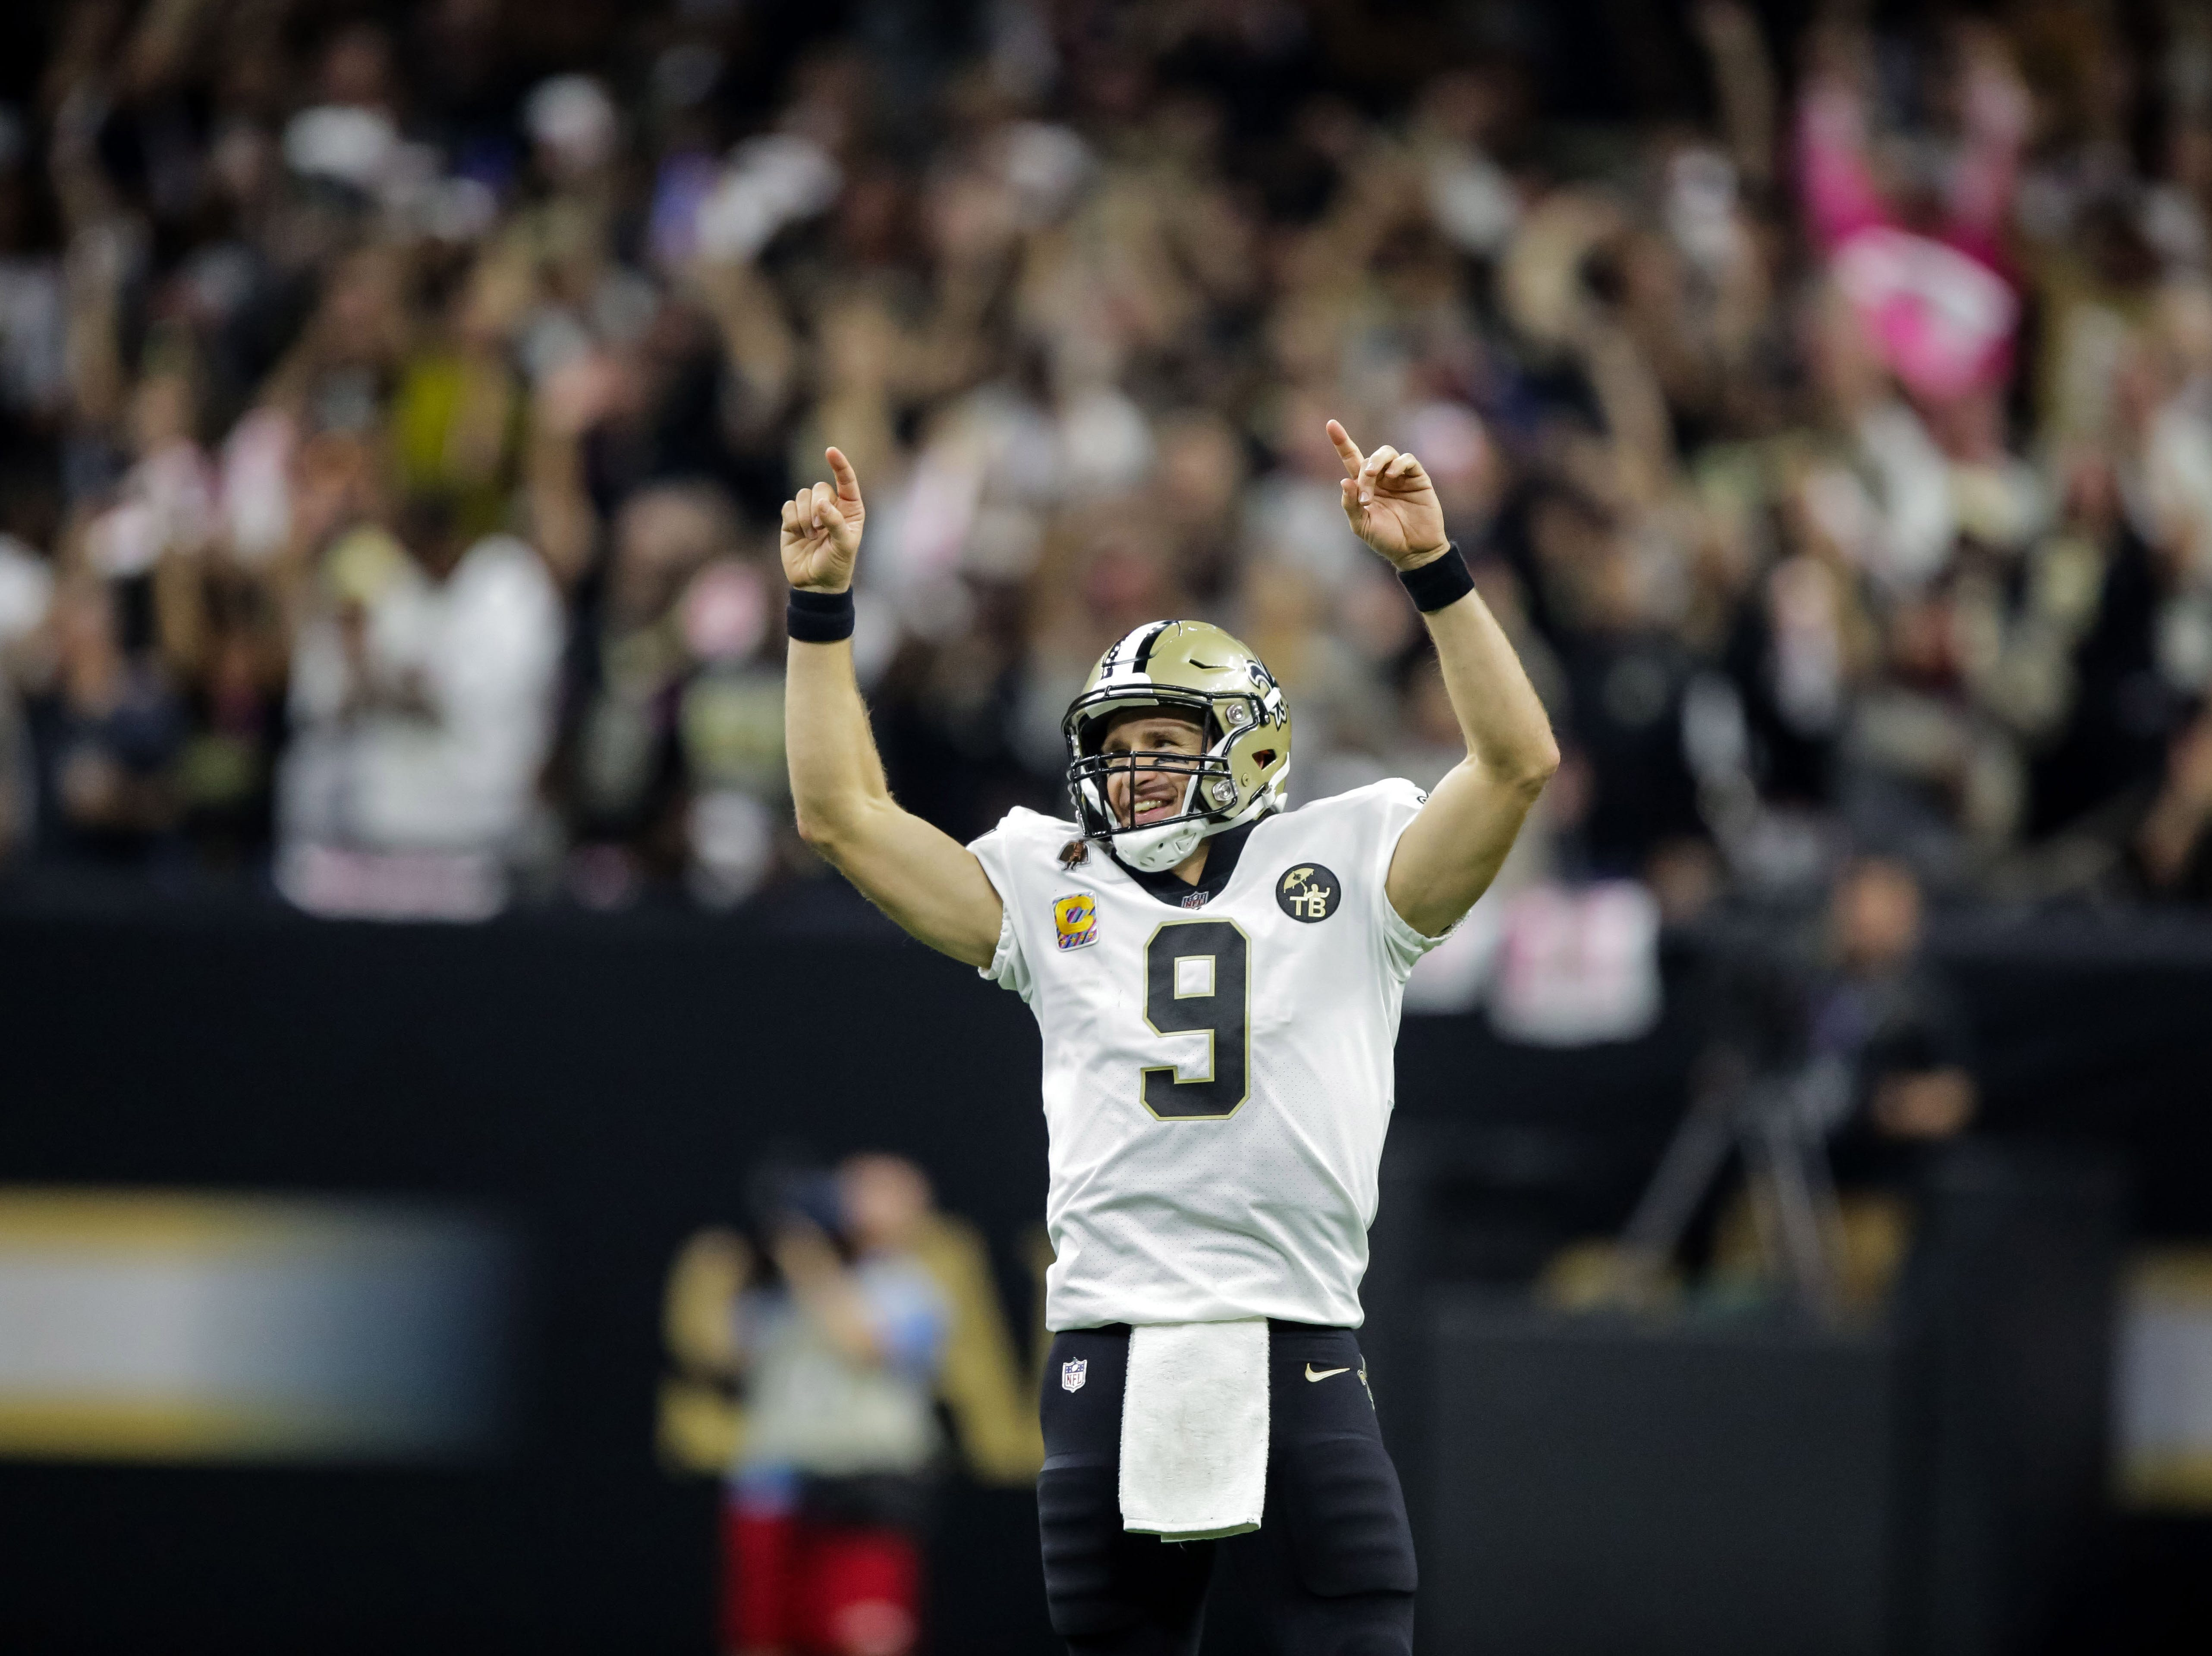 Oct 8, 2018; New Orleans, LA, USA; New Orleans Saints quarterback Drew Brees (9) reacts after setting the NFL record for passing yardage during the second quarter against the Washington Redskins at the Mercedes-Benz Superdome.